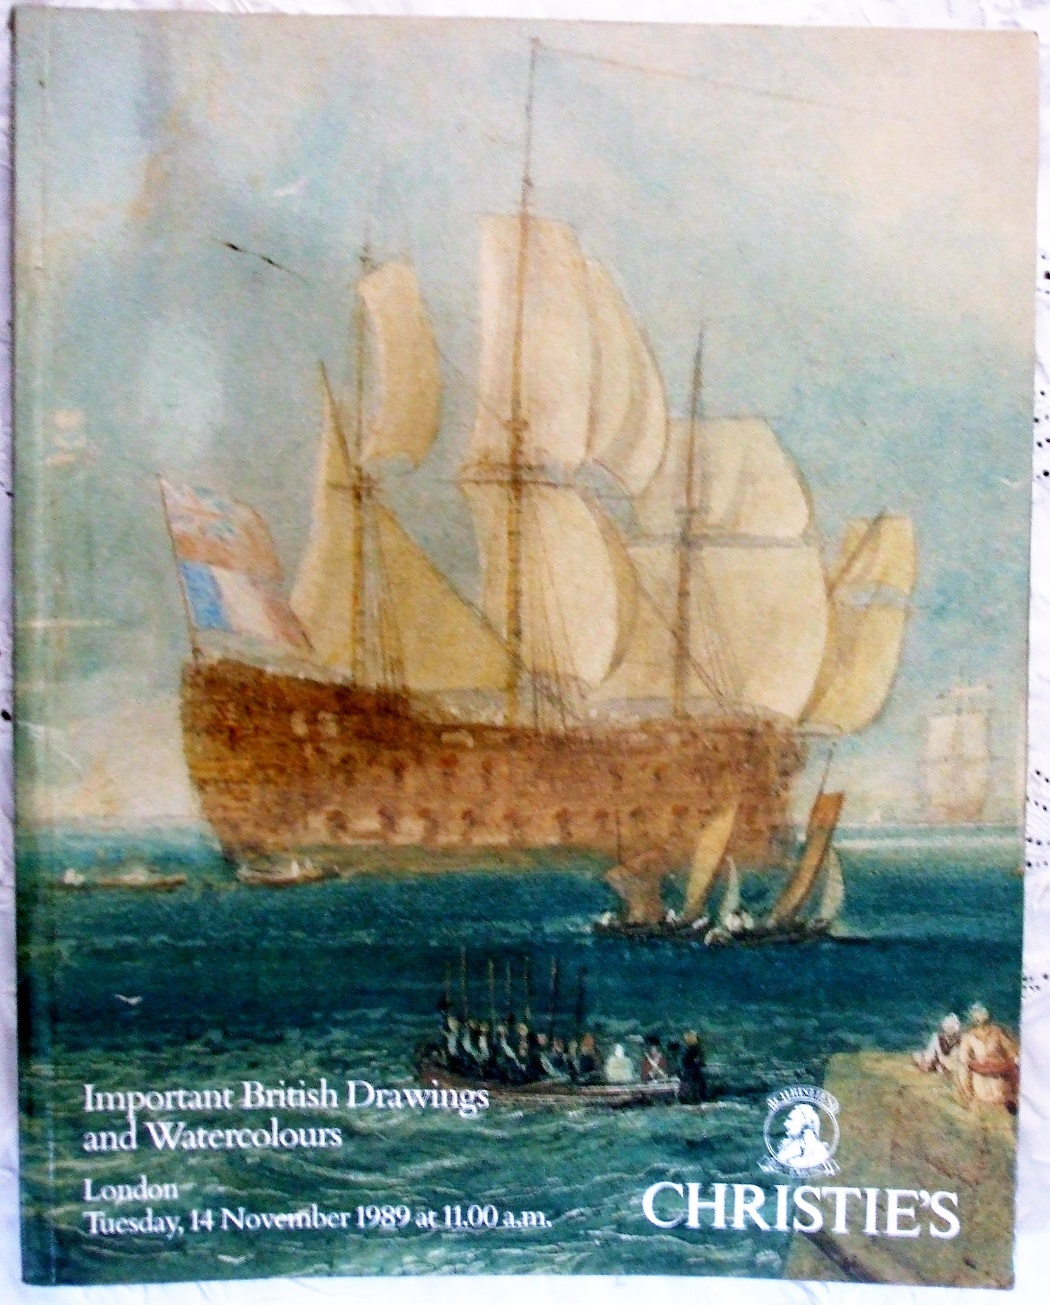 C DRESDEN-4161 Important British Drawings and Watercoours L 14. 11. 1989